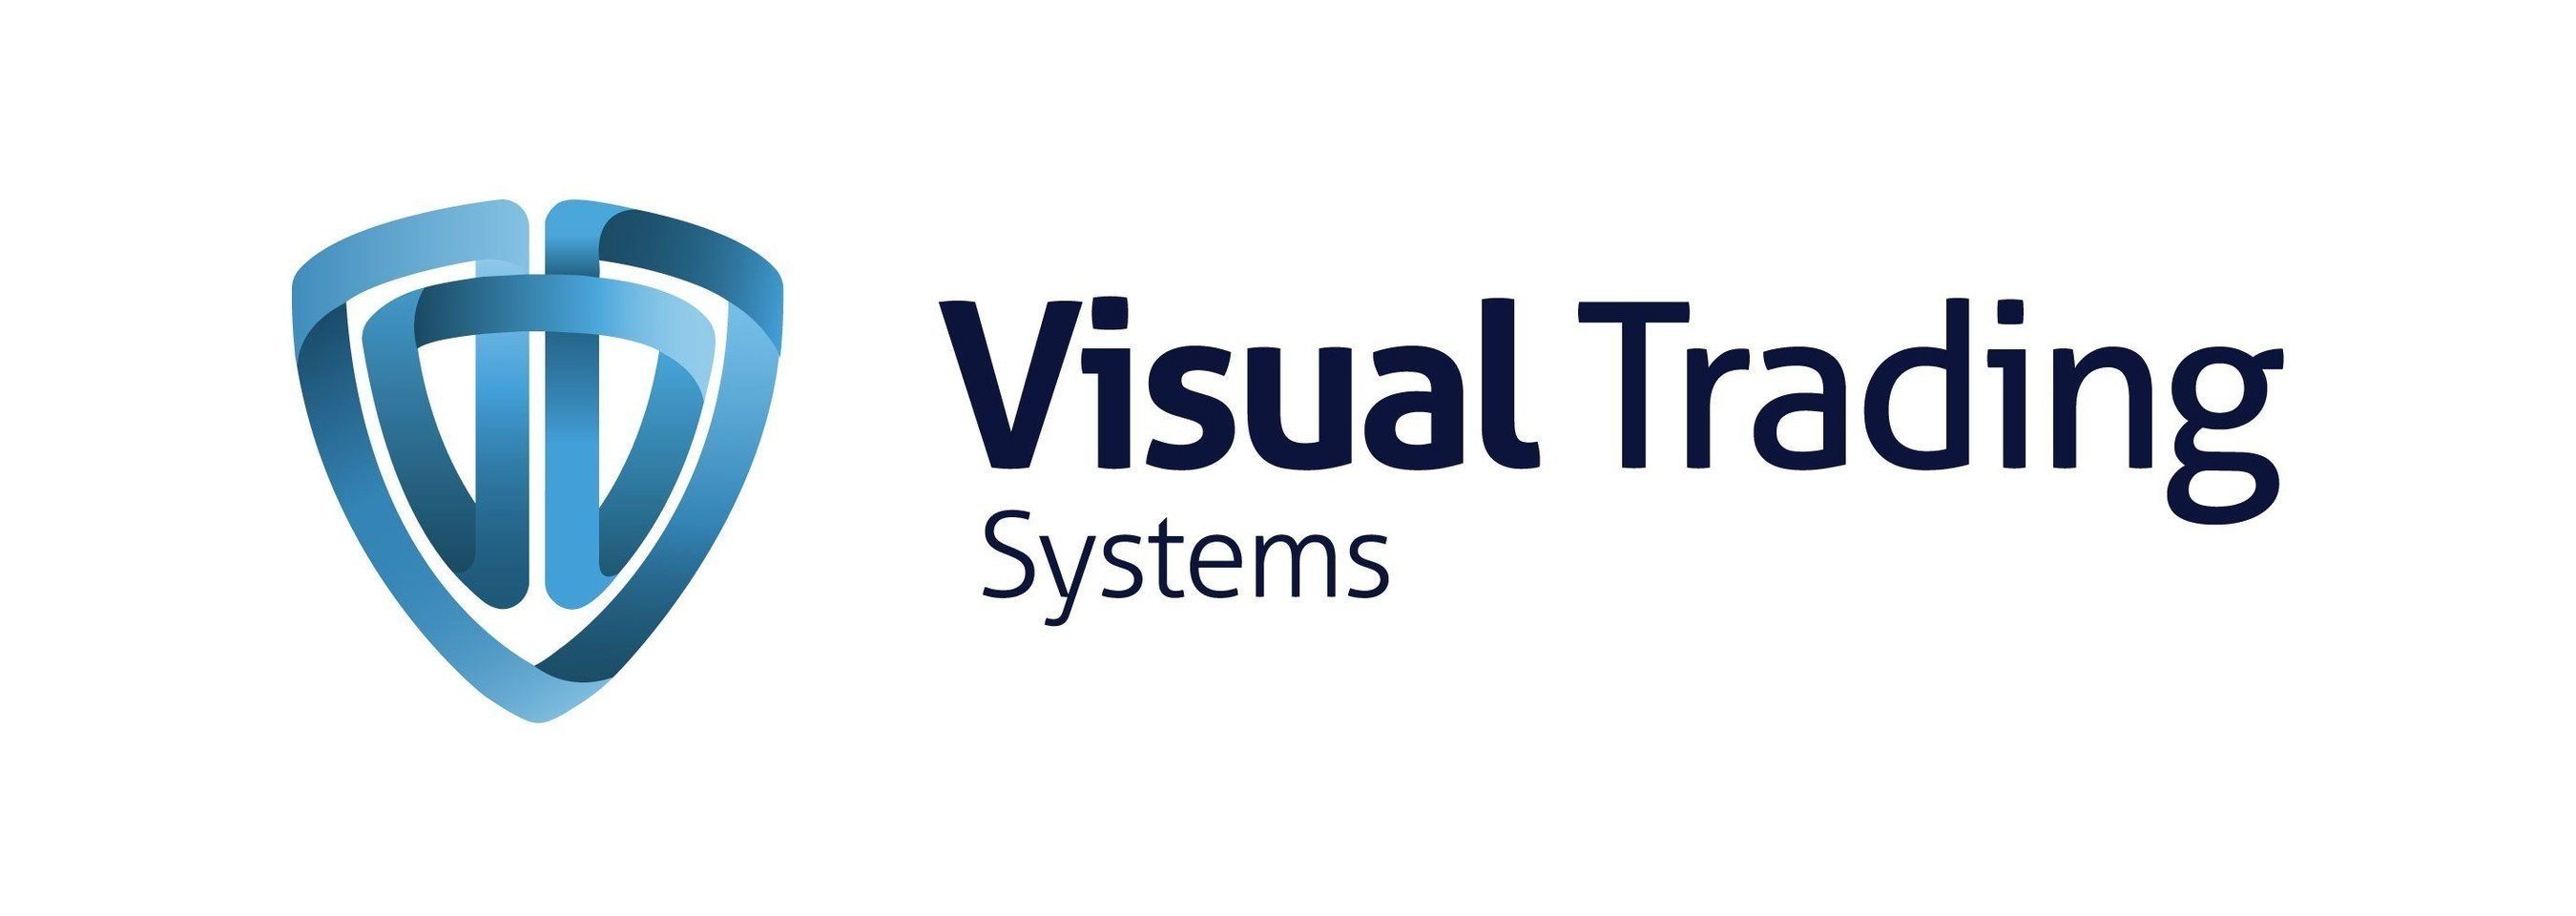 Visual Trading Systems, Inc. 'Announces New Products & Strategic Hires